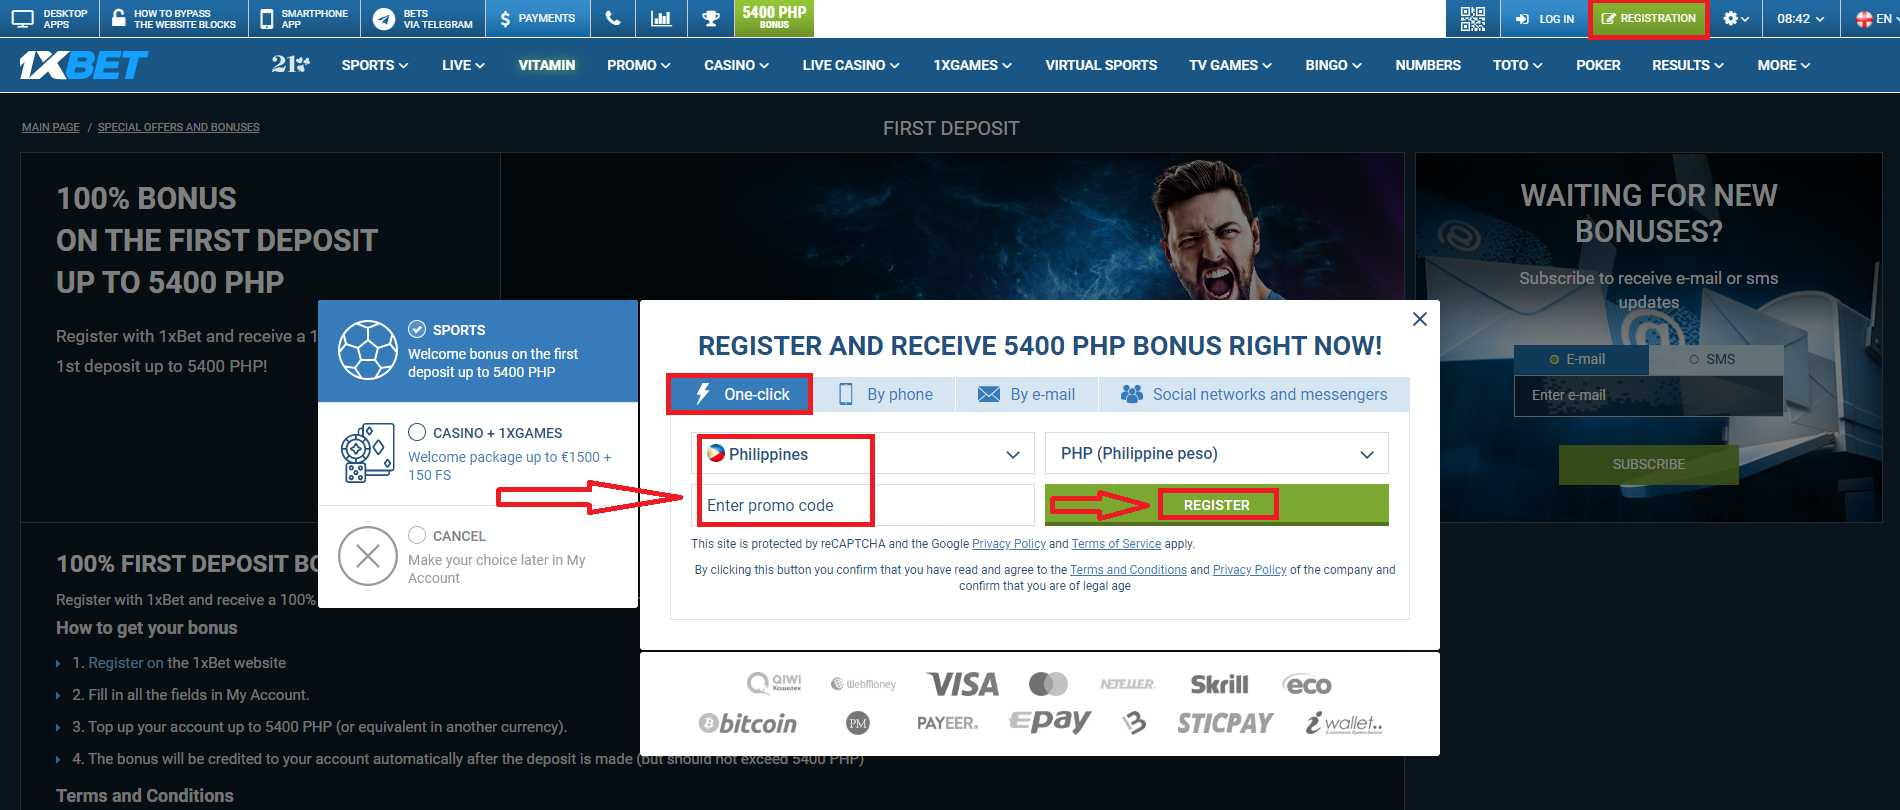 Receive Your 1xBet Registration Bonus